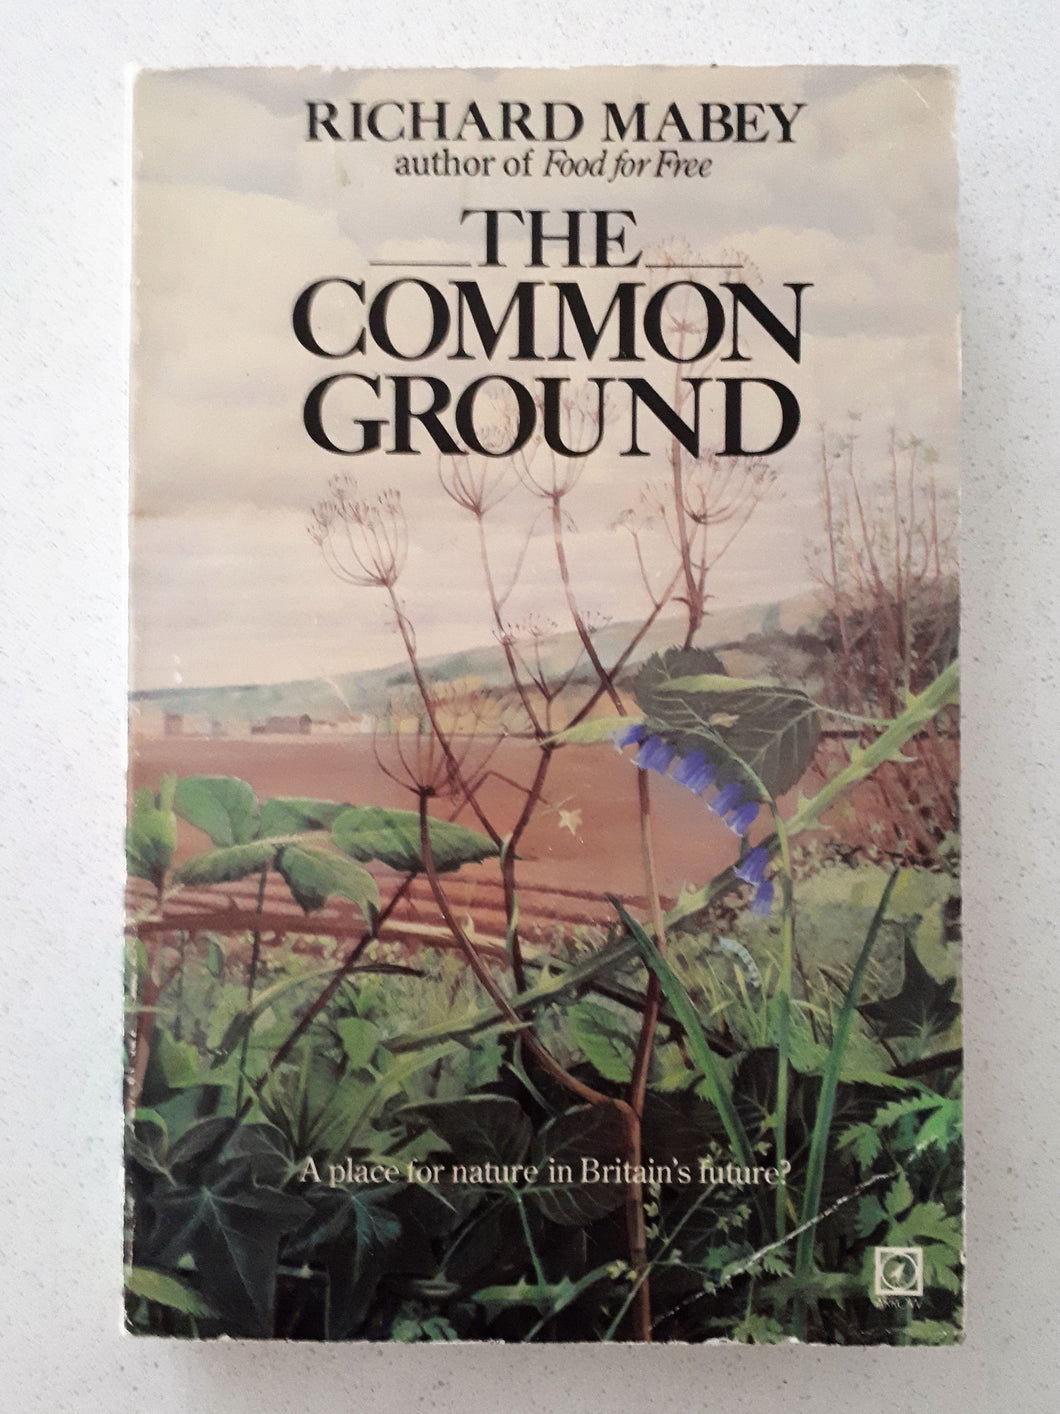 The Common Ground by Richard Mabey